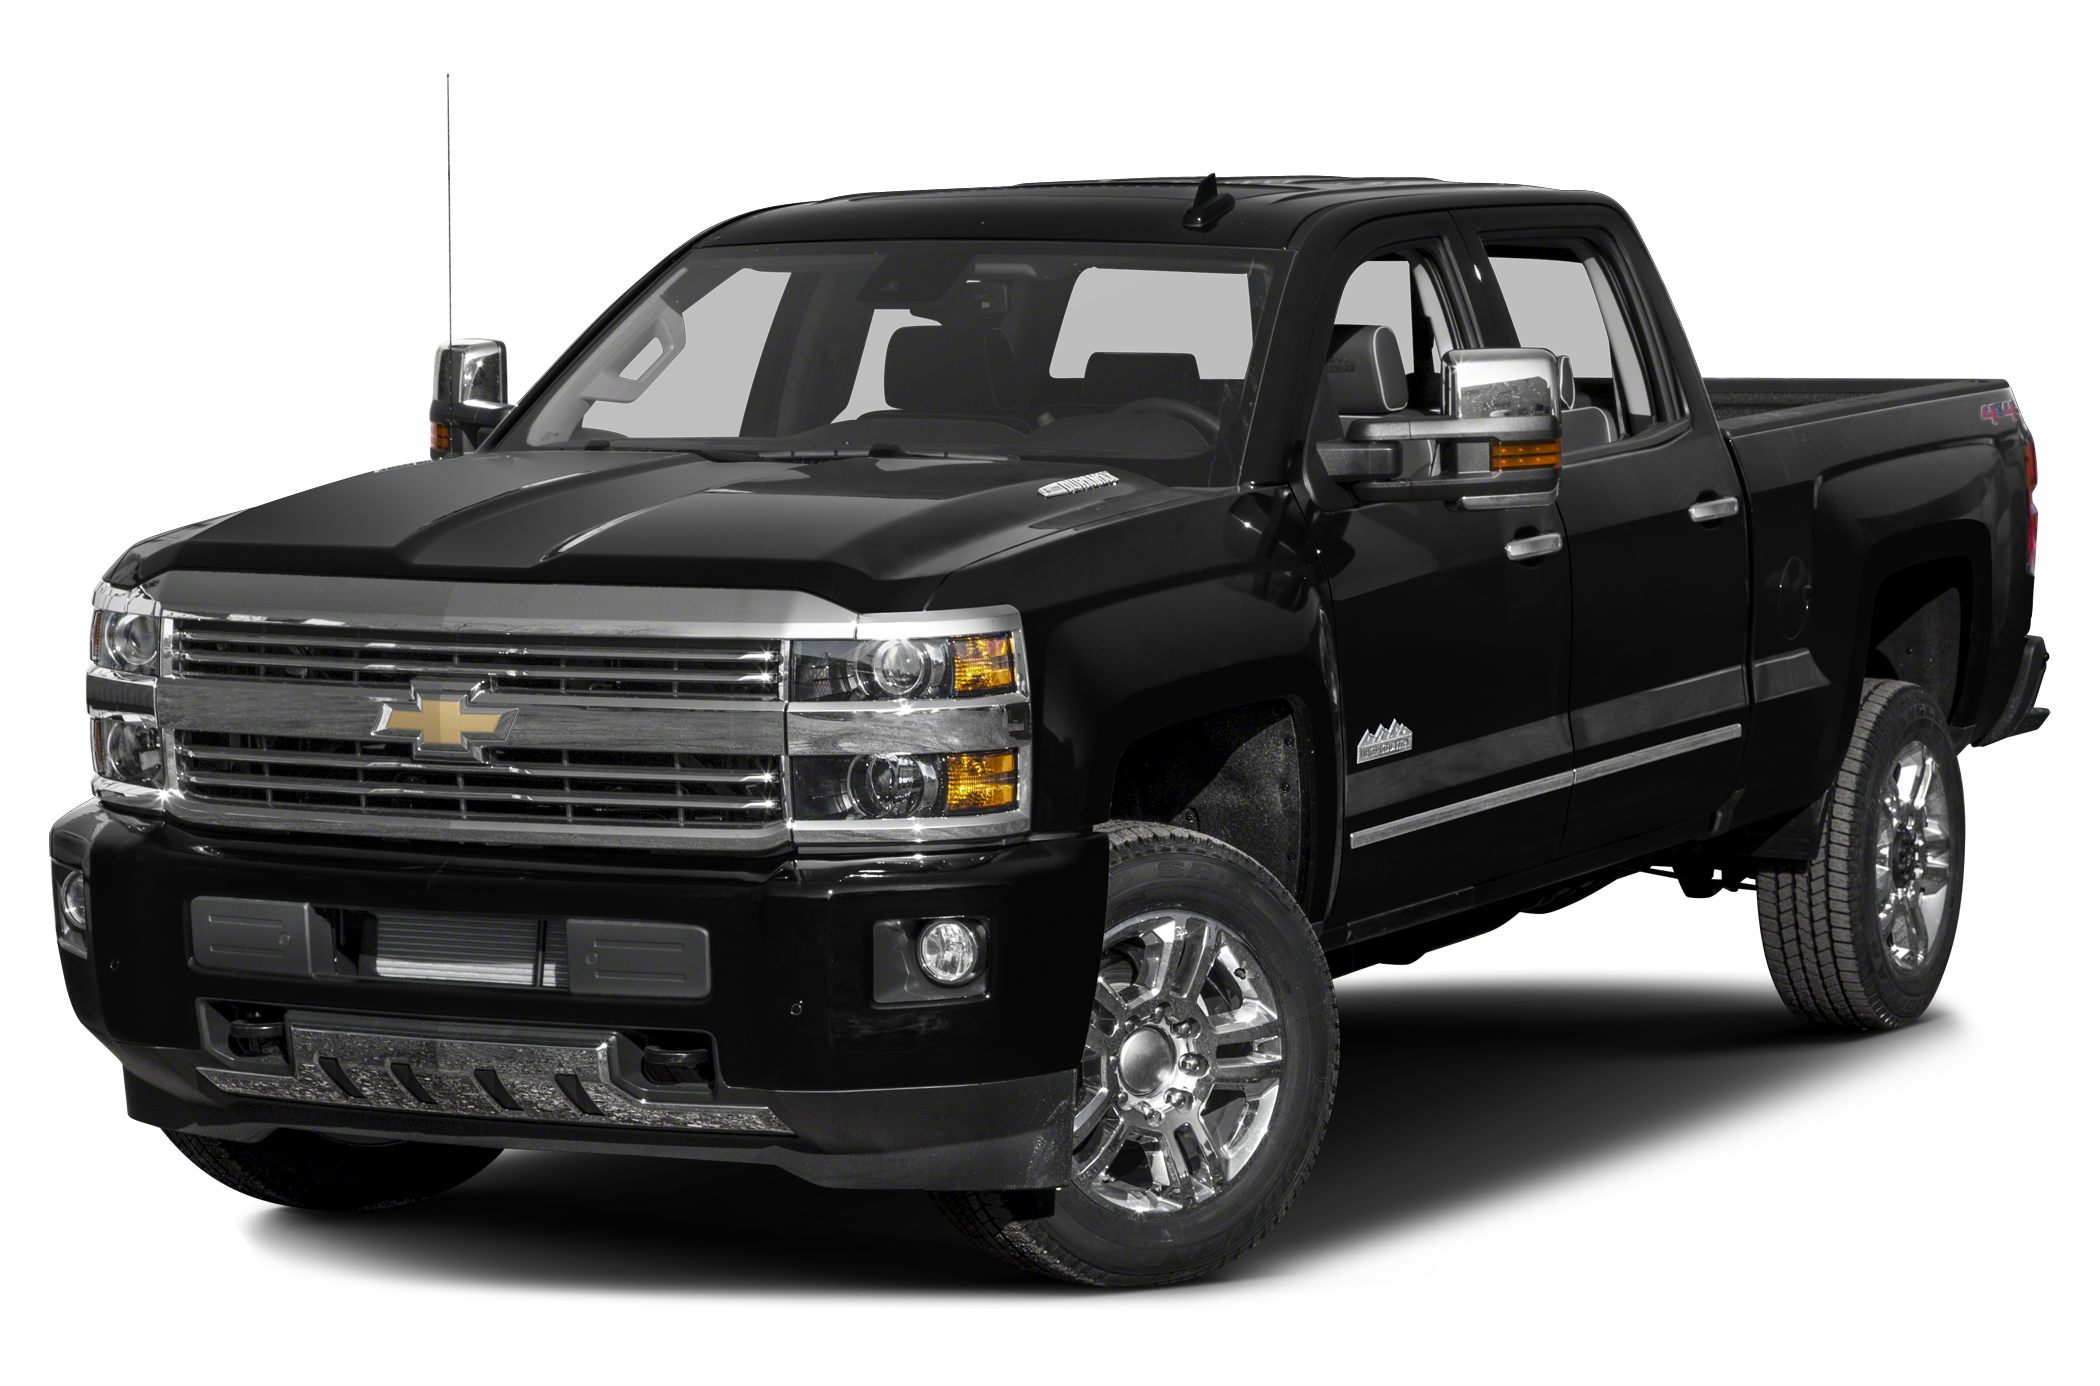 2016 Chevrolet Silverado 2500hd High Country 4x4 Crew Cab 8 Ft Box 167 7 In Wb Specs And Prices